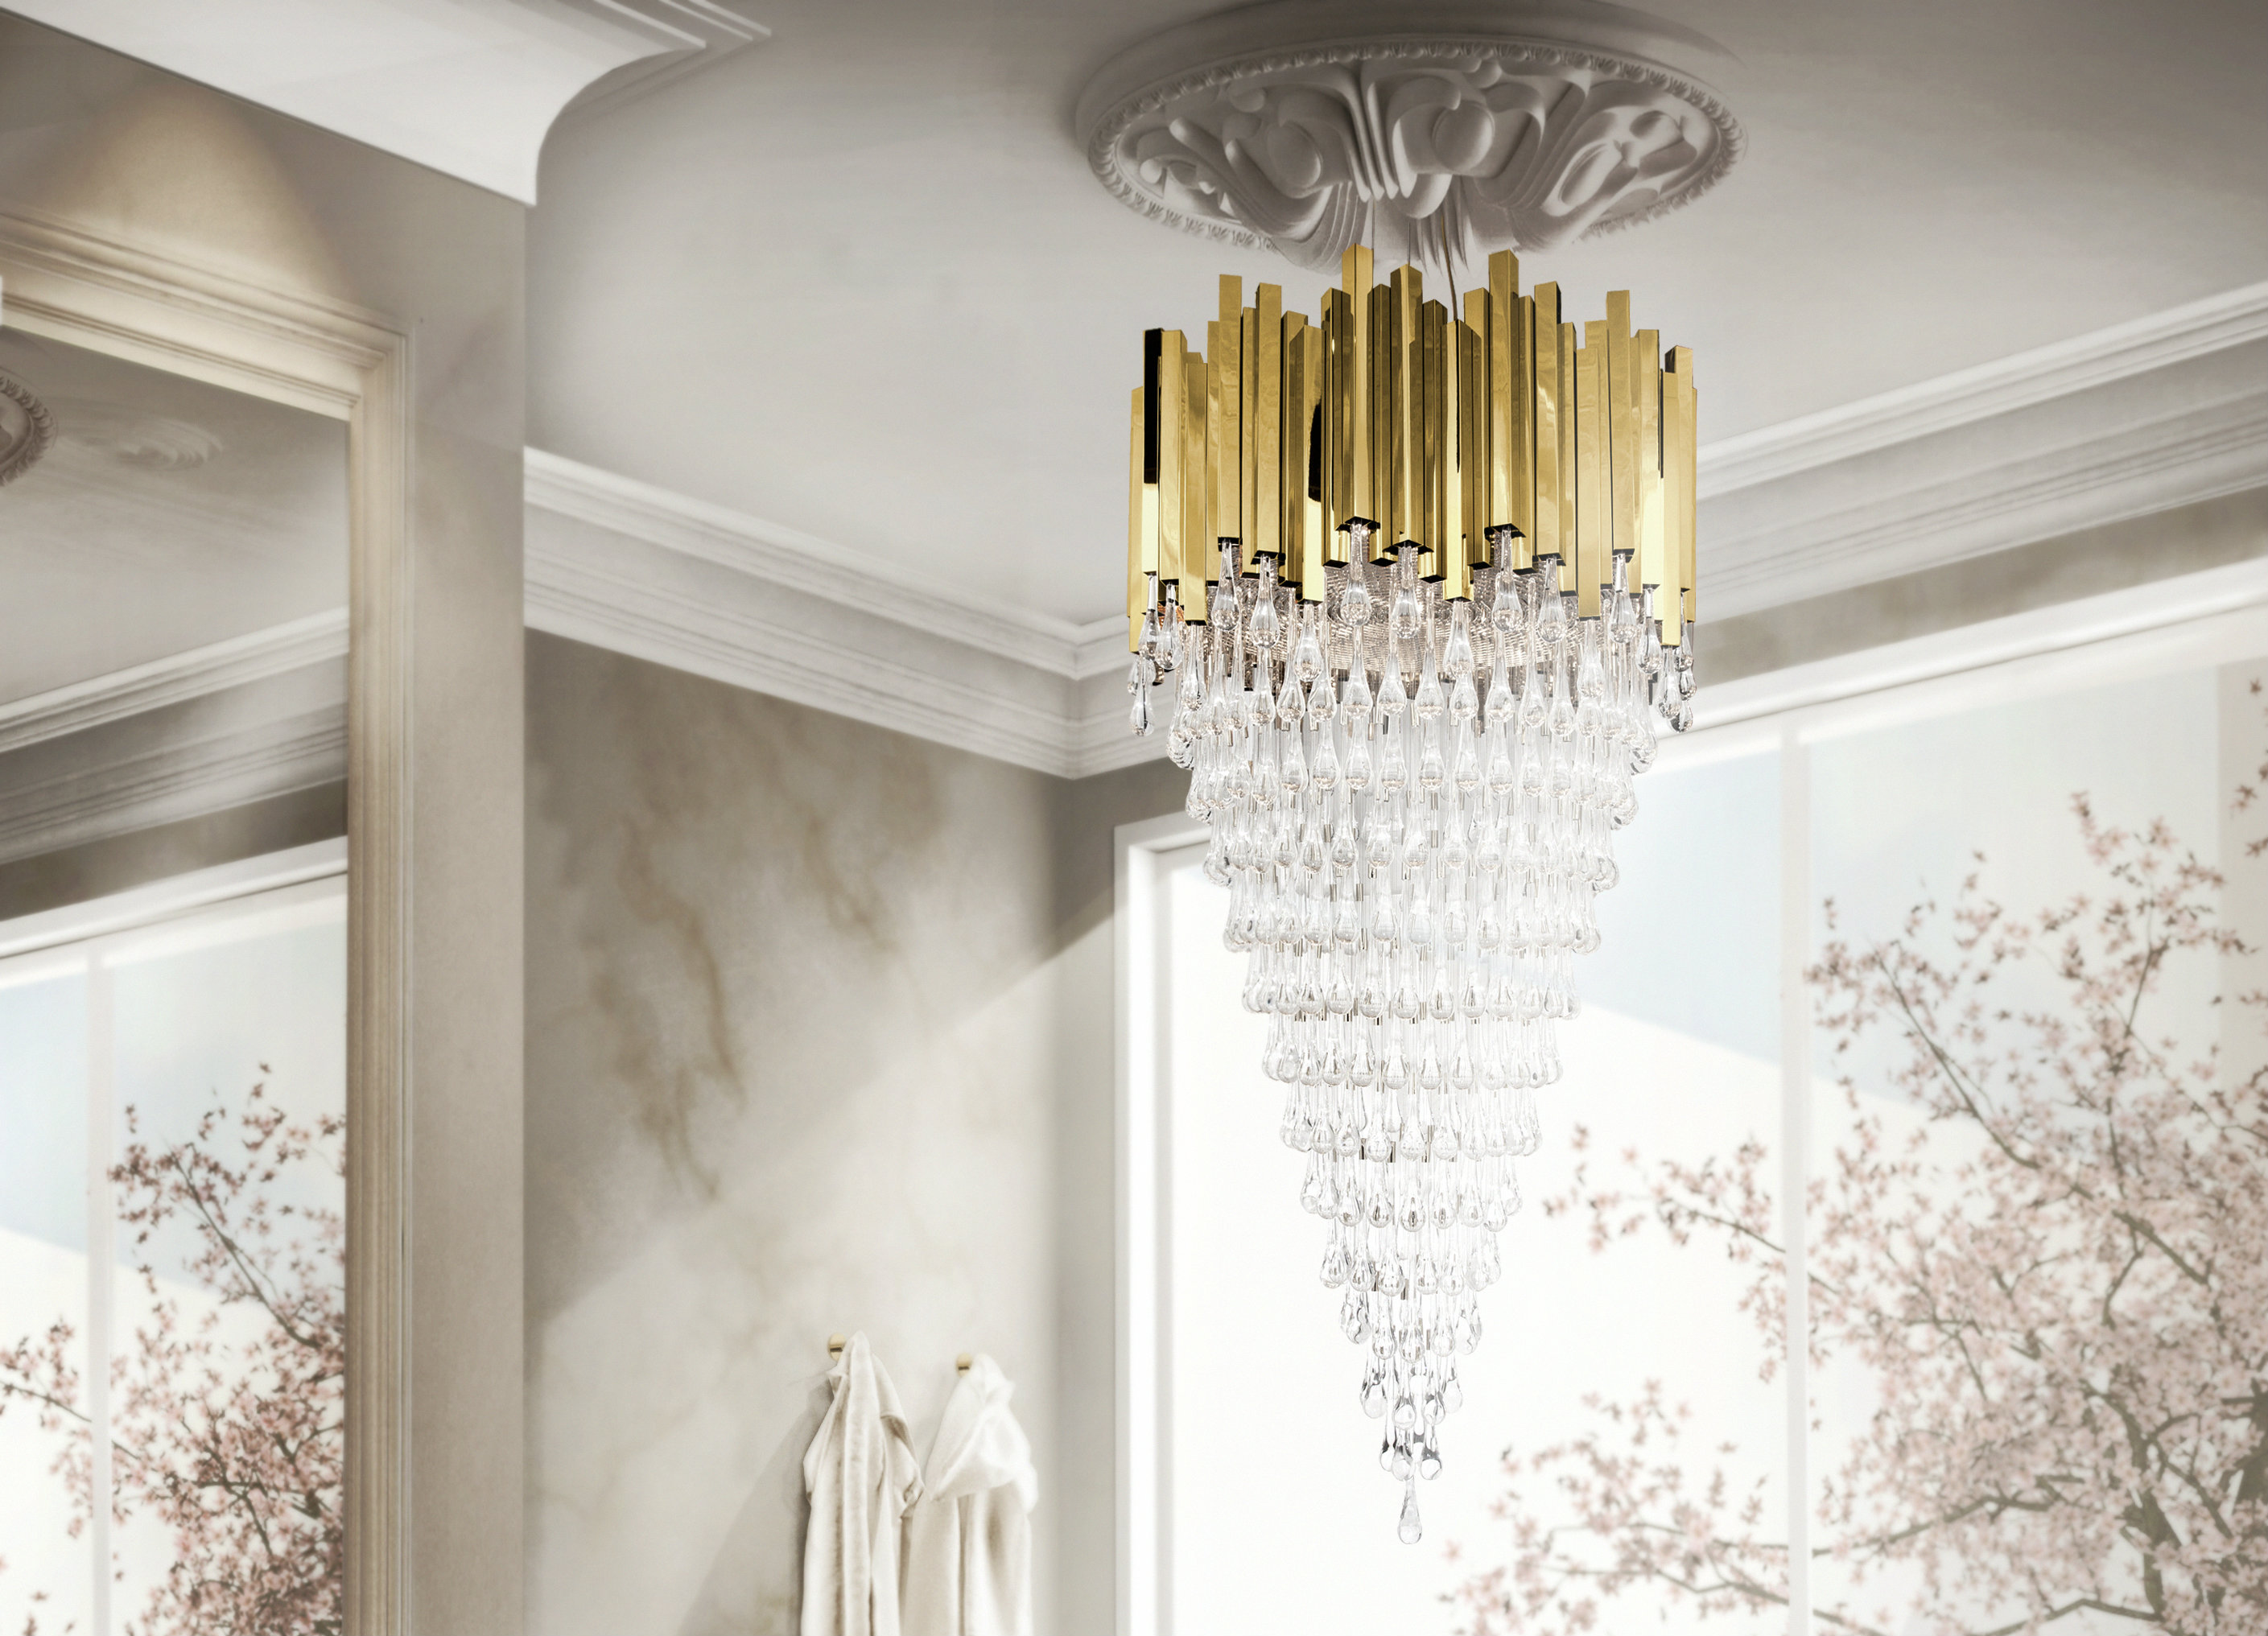 5 Gold chandeliers with crystals to light up your world best icff conferences Best ICFF Conferences You Can't Miss trump chandeleir 2 best icff conferences Best ICFF Conferences You Can't Miss trump chandeleir 2